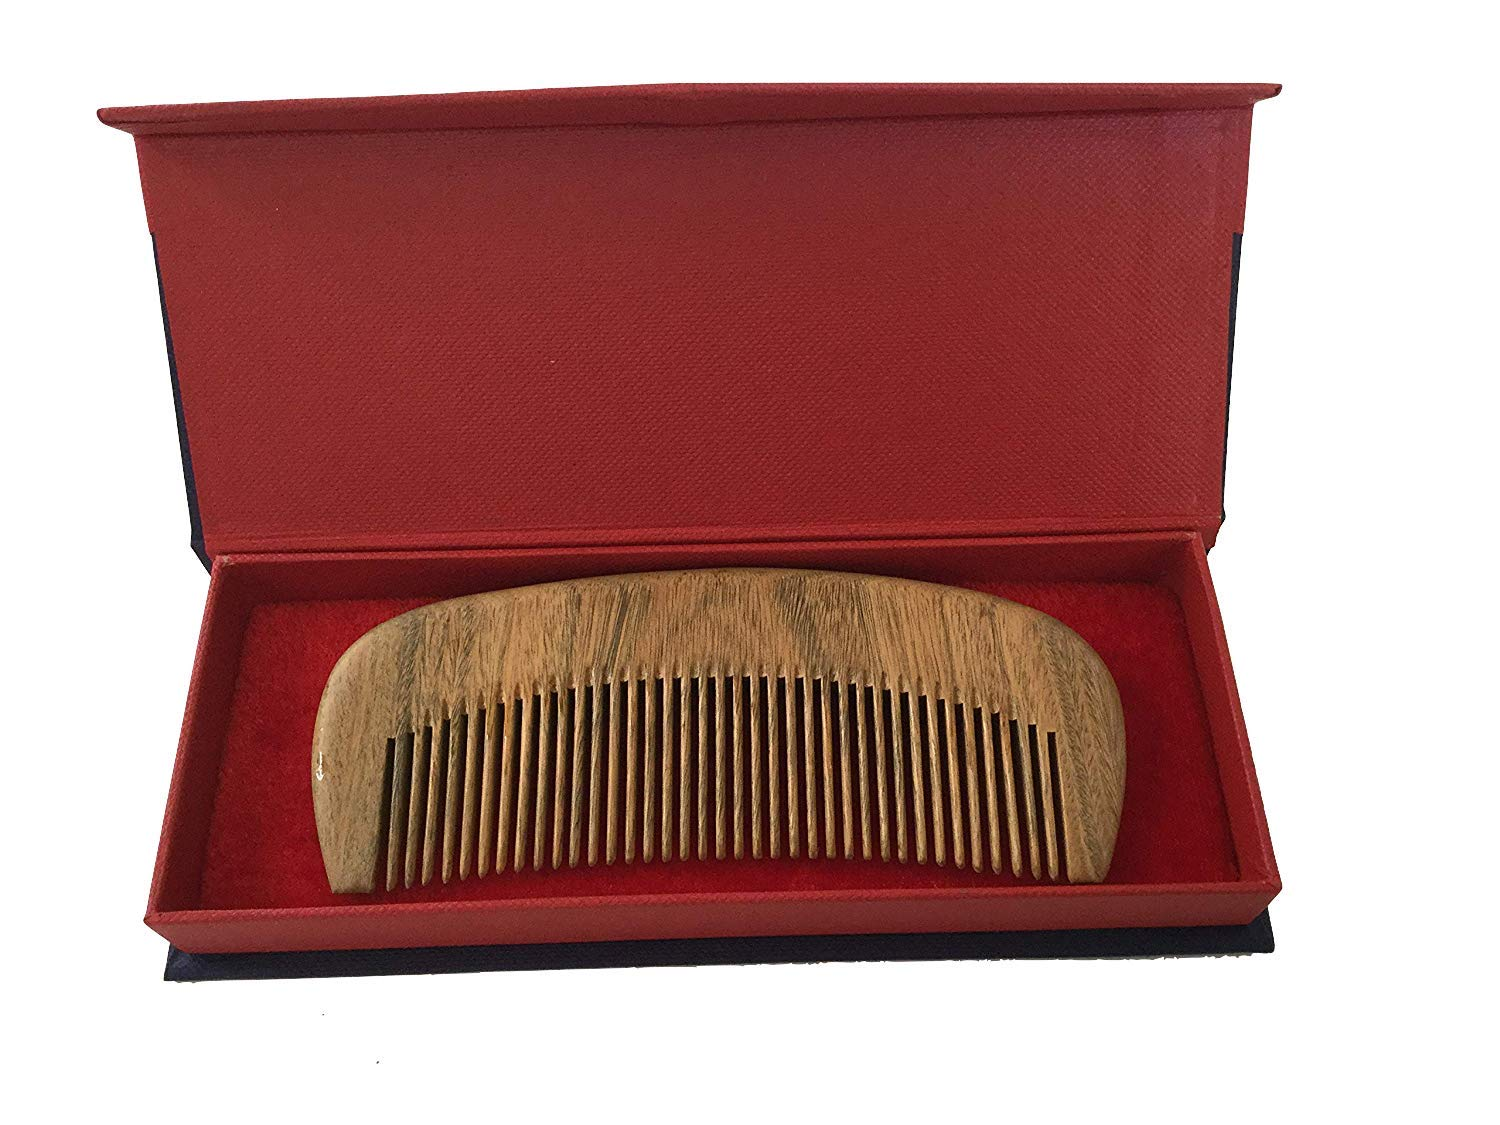 Jade Rosewood Comb, Precious Wood From Virgin Forest, Great Gift